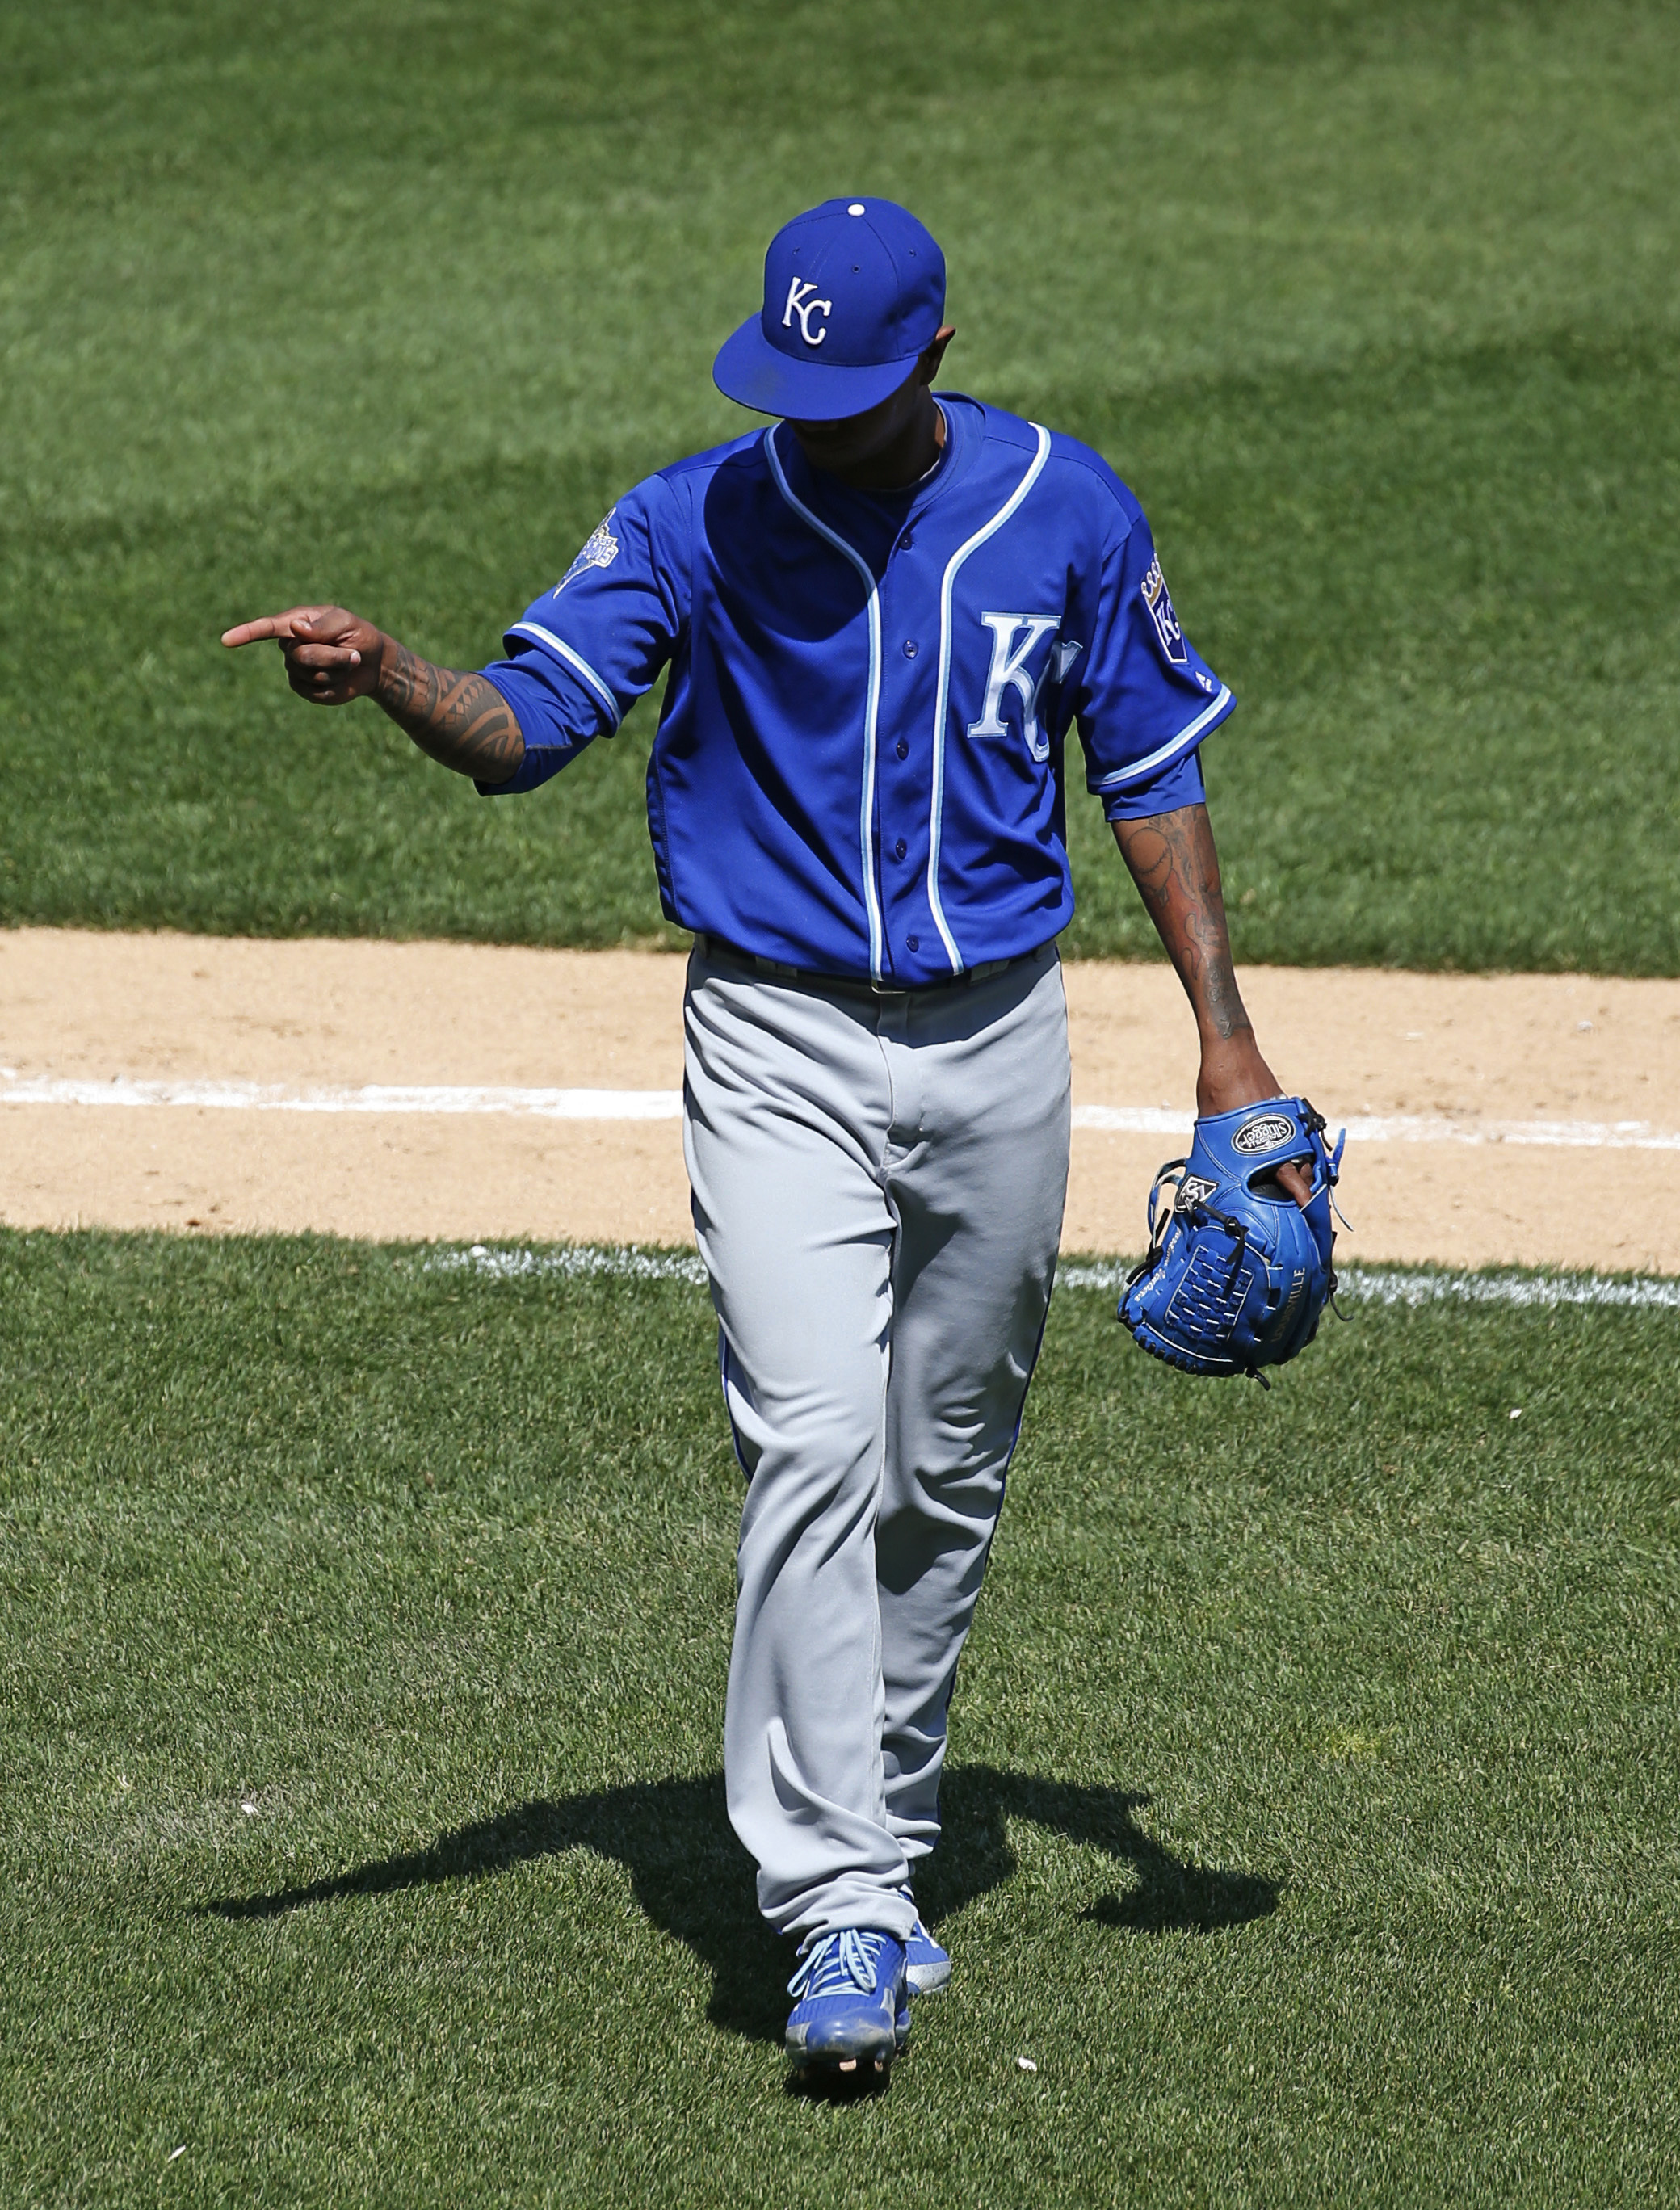 Kansas City Royals starter Yordano Ventura points to the dugout as he walks back to the dugout after bottom of the fifth inning of a baseball game against the Chicago White Sox on Sunday, May 22, 2016, in Chicago. (AP Photo/Nam Y. Huh)